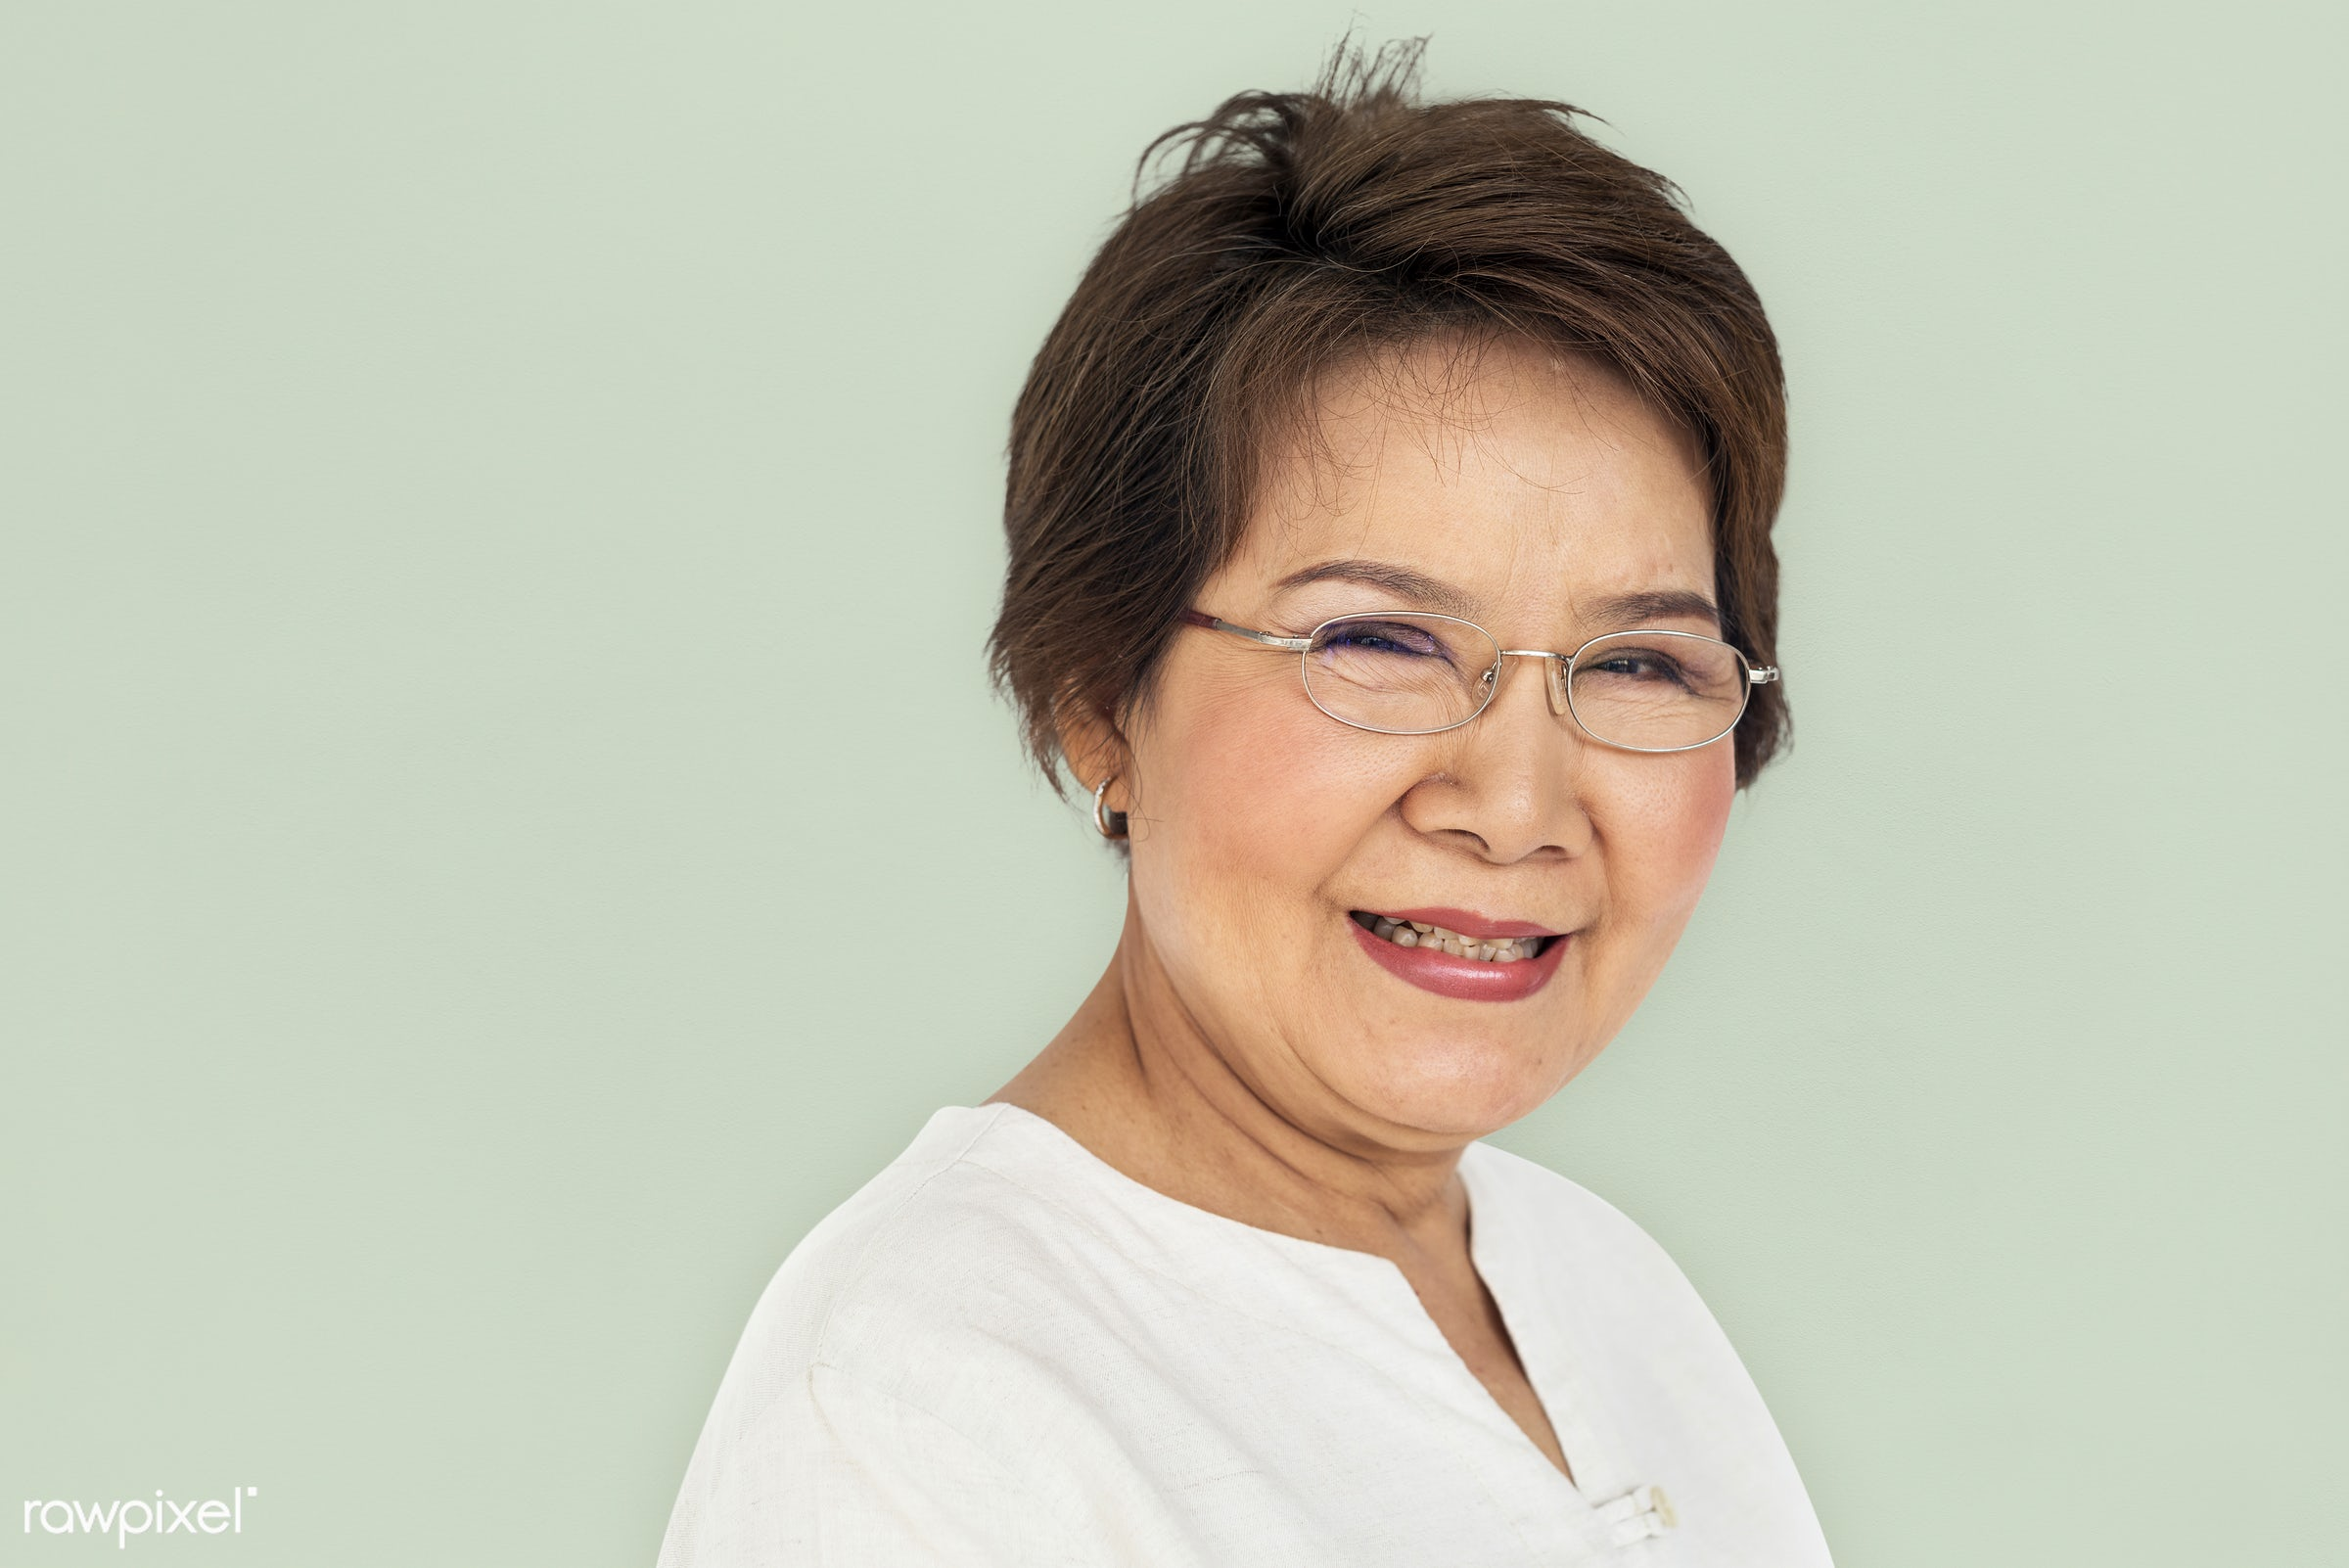 expression, studio, earth tone, person, people, asian, woman, cheerful, smiling, isolated, happiness, portrait, emotion,...